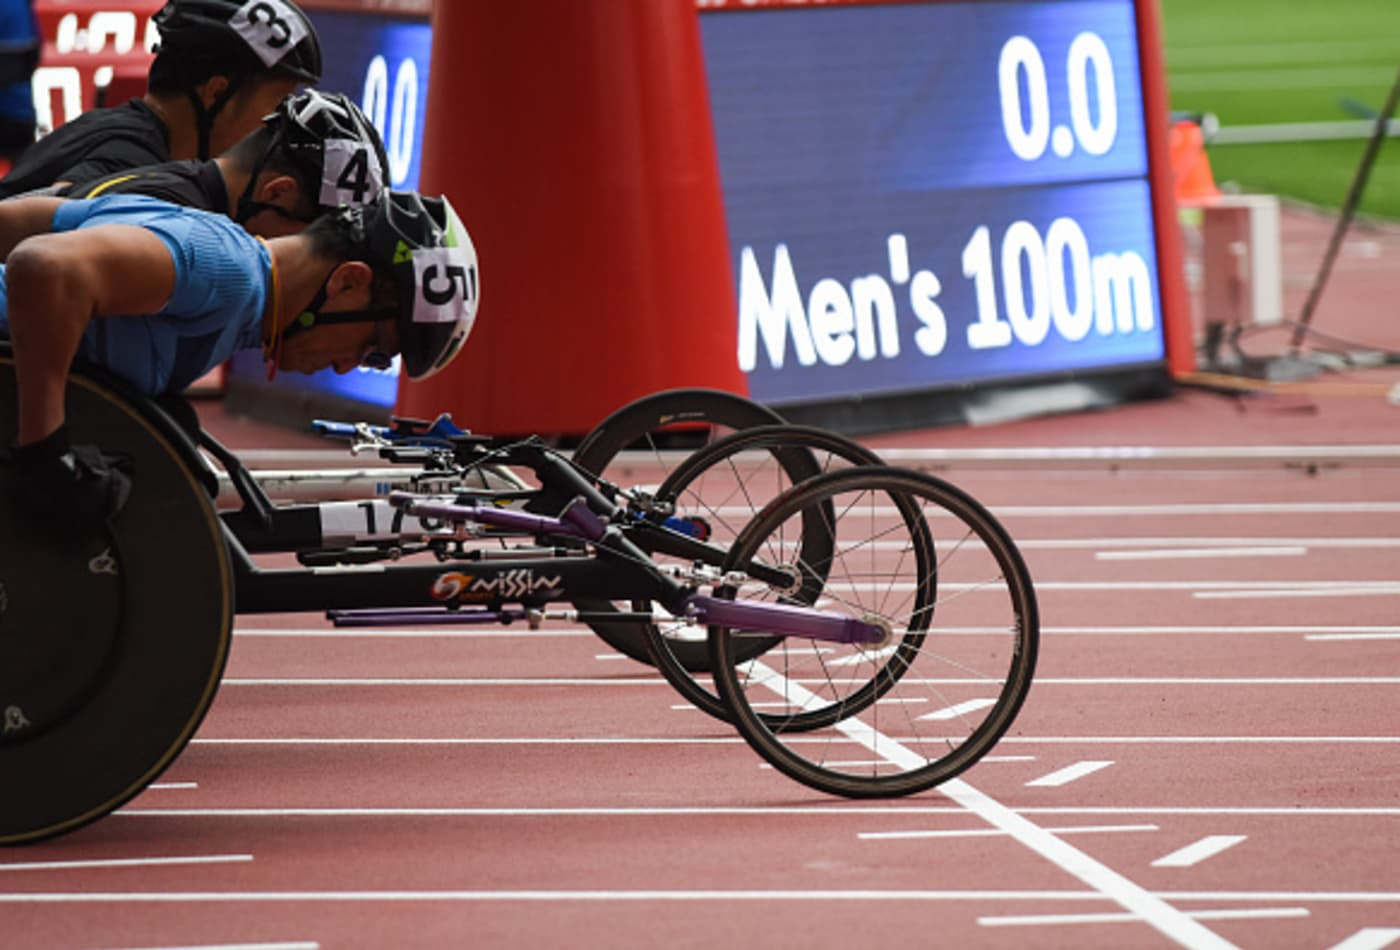 Paralympics could pave the way for a 'more inclusive' post-pandemic recovery, experts say